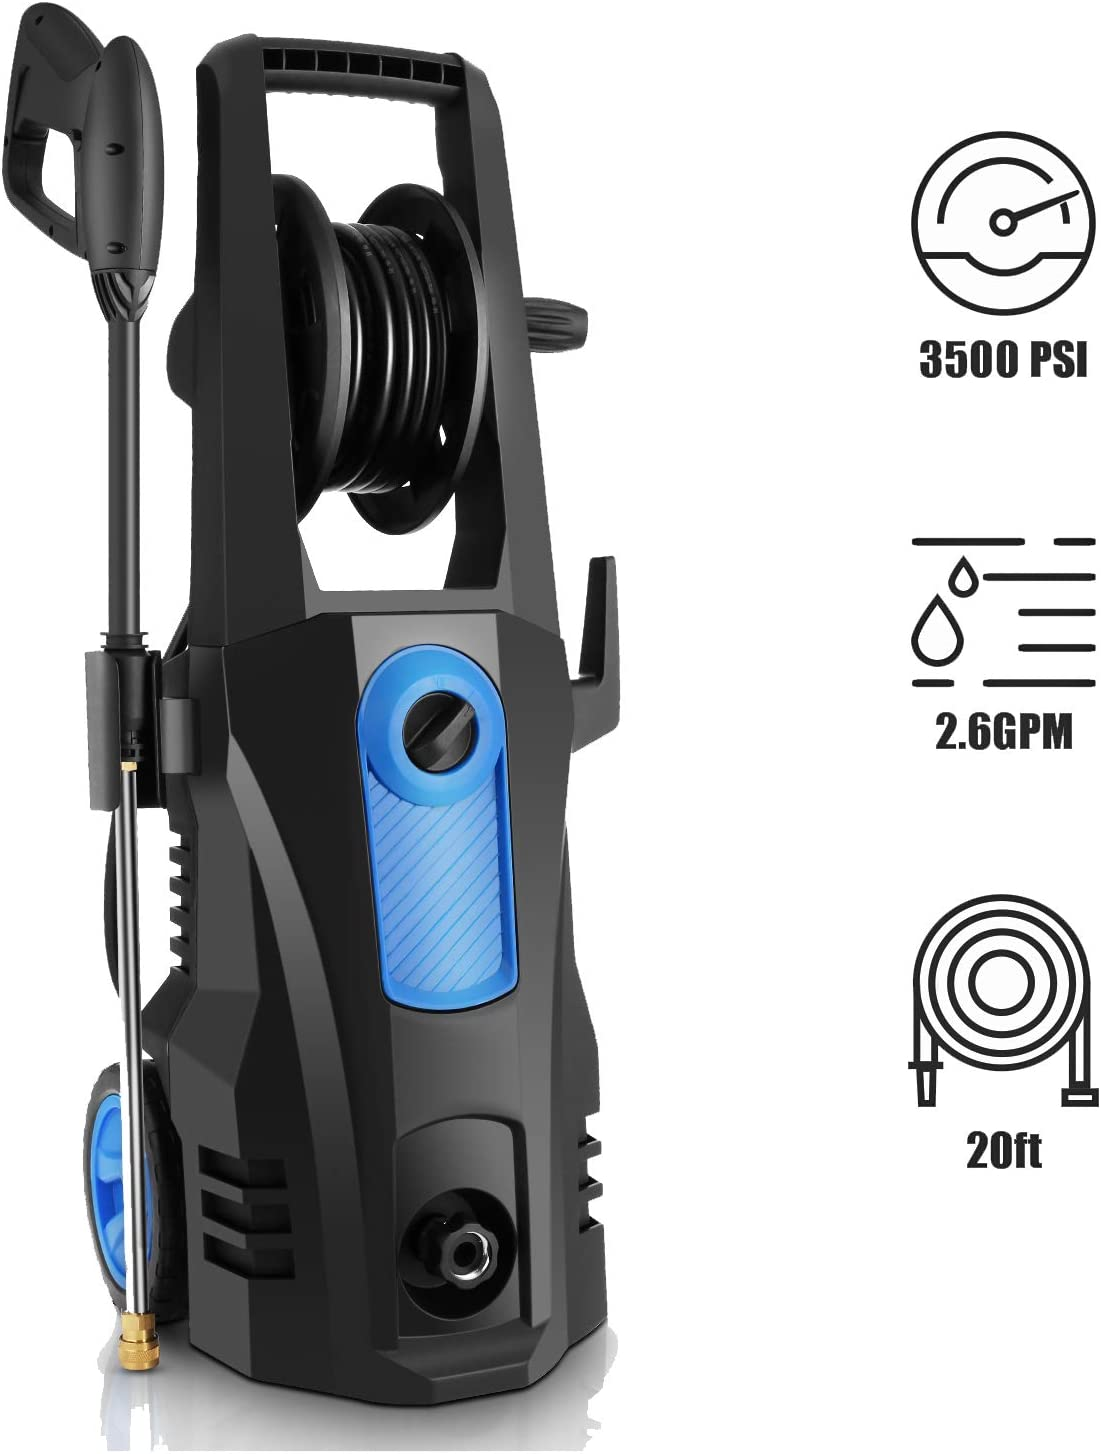 TEANDE 3500 PSI Electric Pressure Washer, 2.60 GPM 1800W Power Washer with Hose Reel Blue